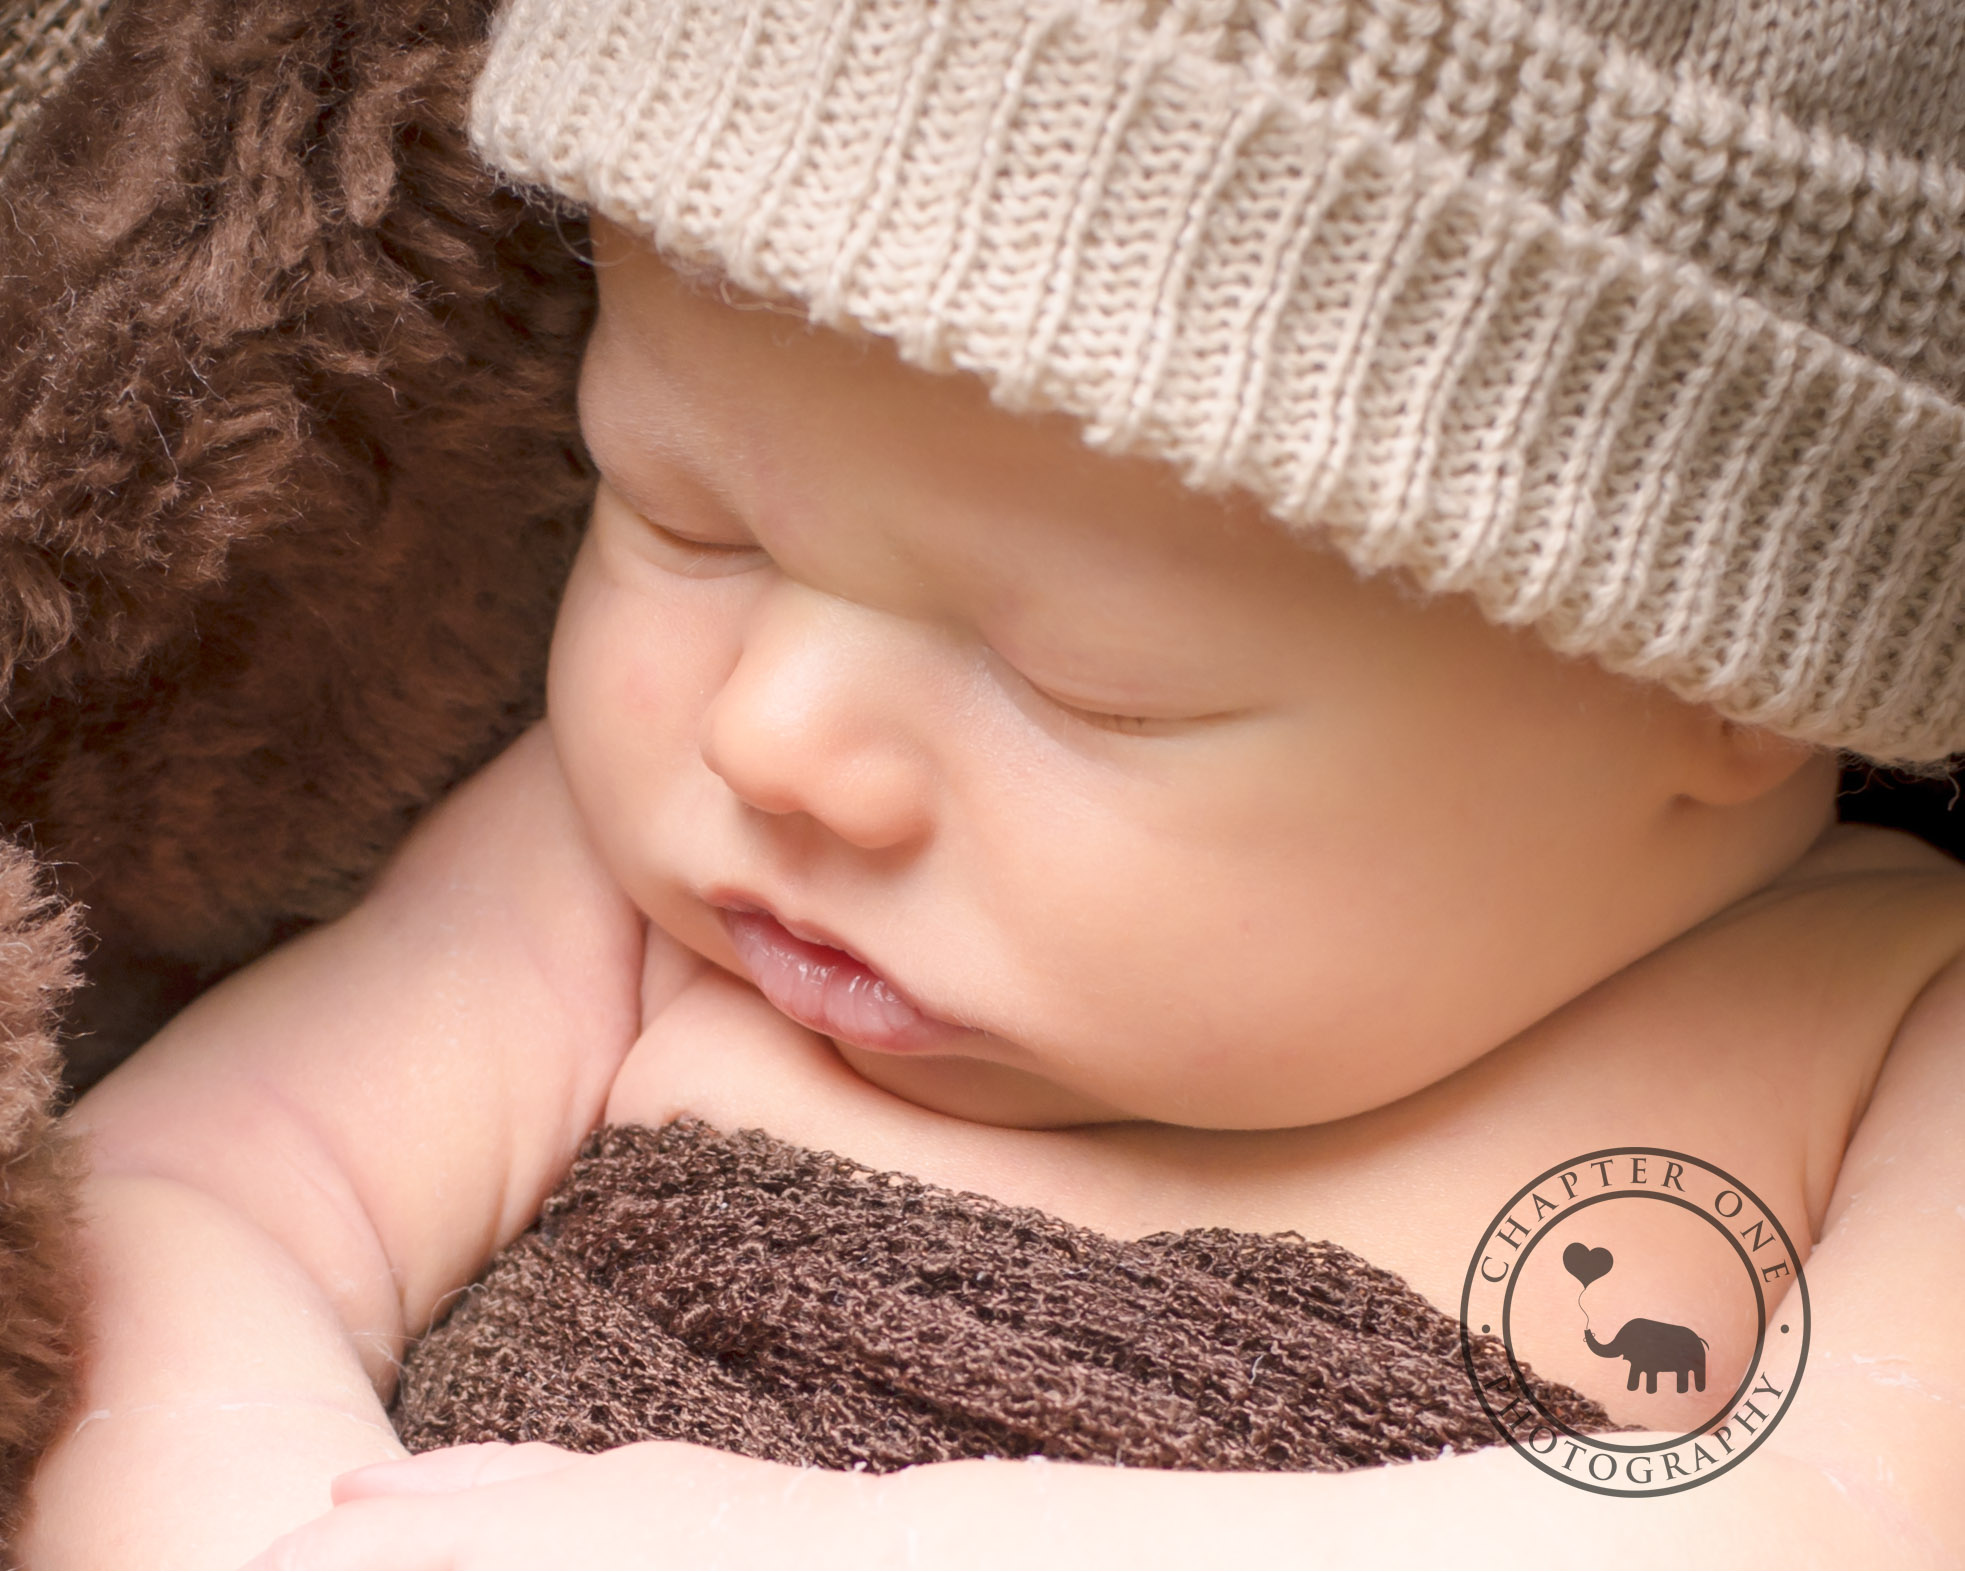 Sydney Newborn baby with brown hat